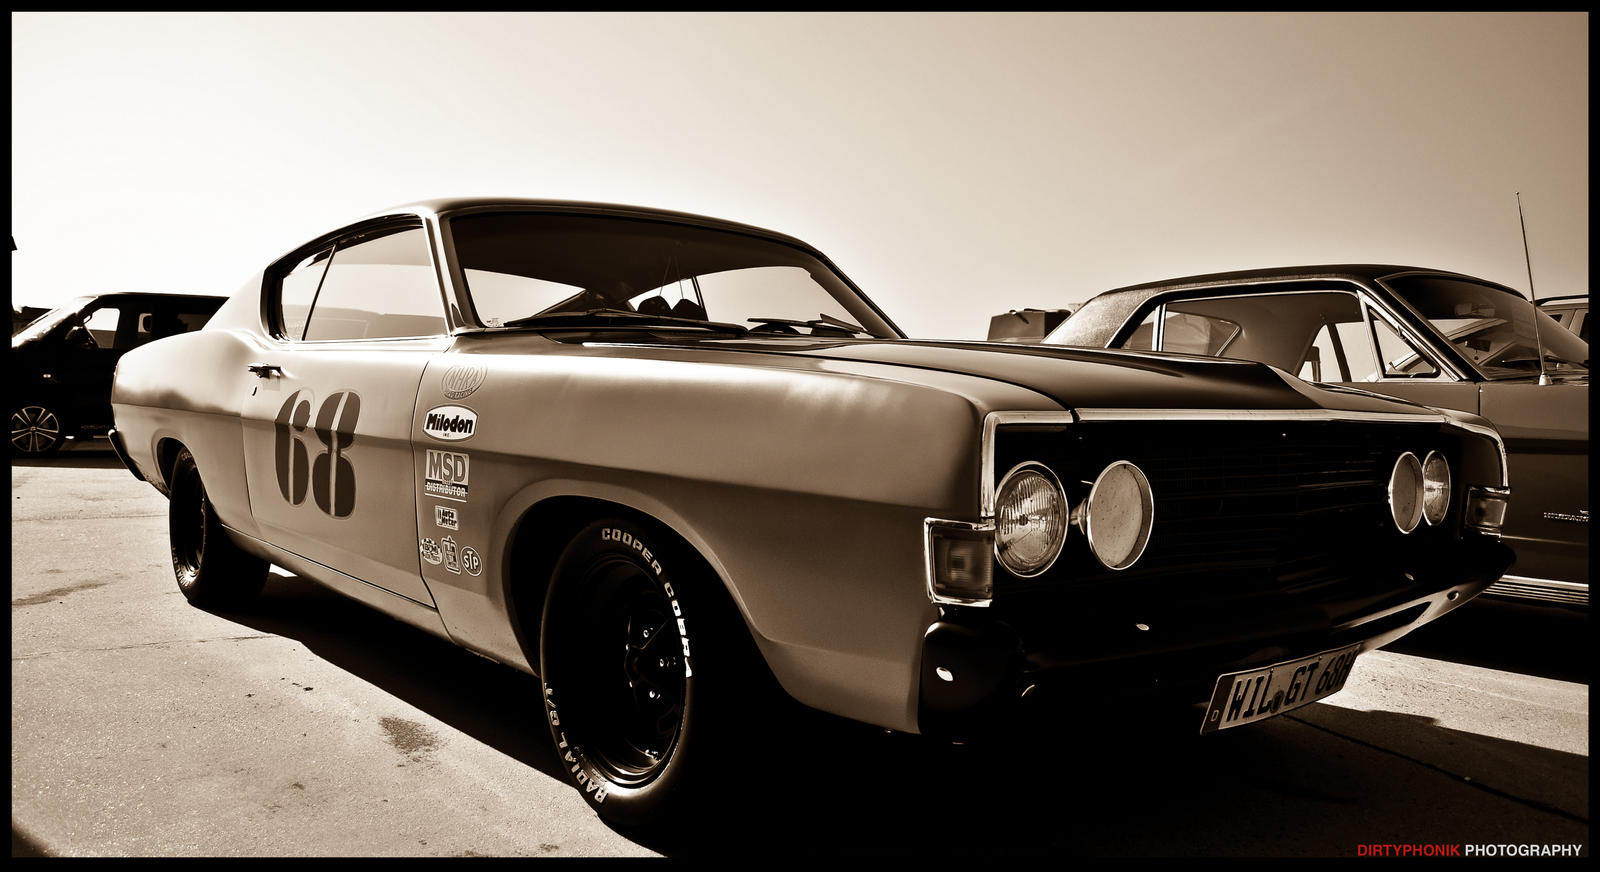 68_racing_by_dirtyphonik-d4byqny.jpg